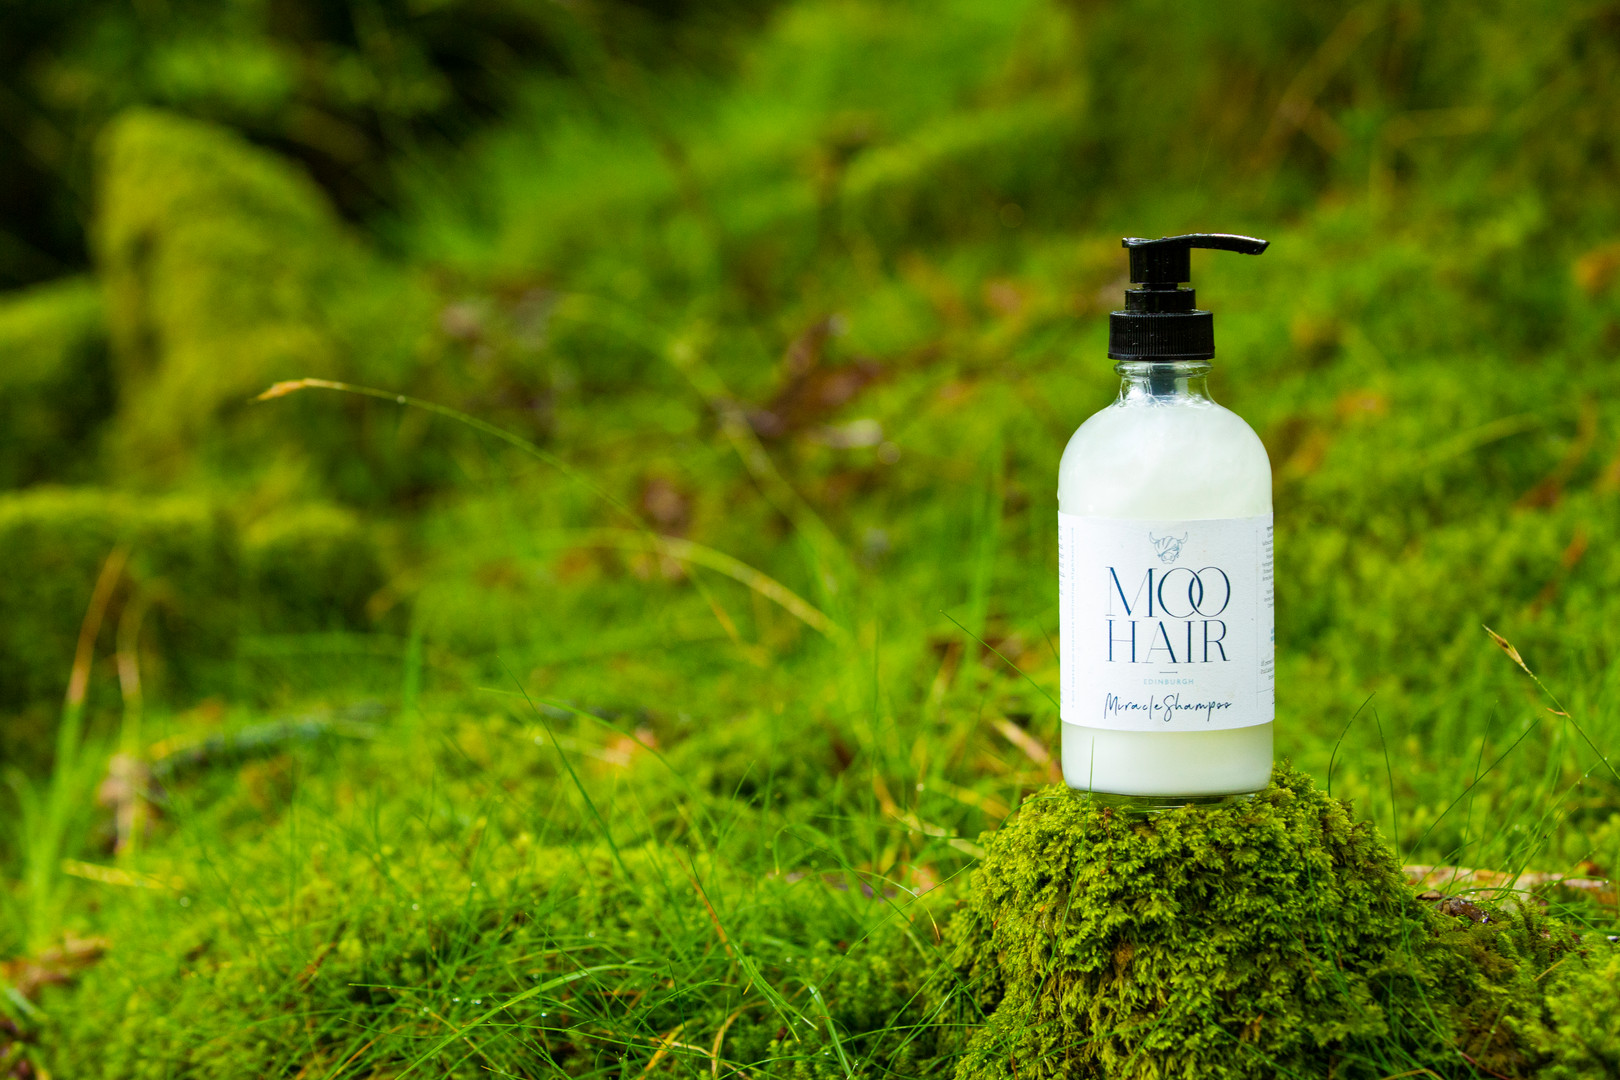 Moo Hair | Product photography